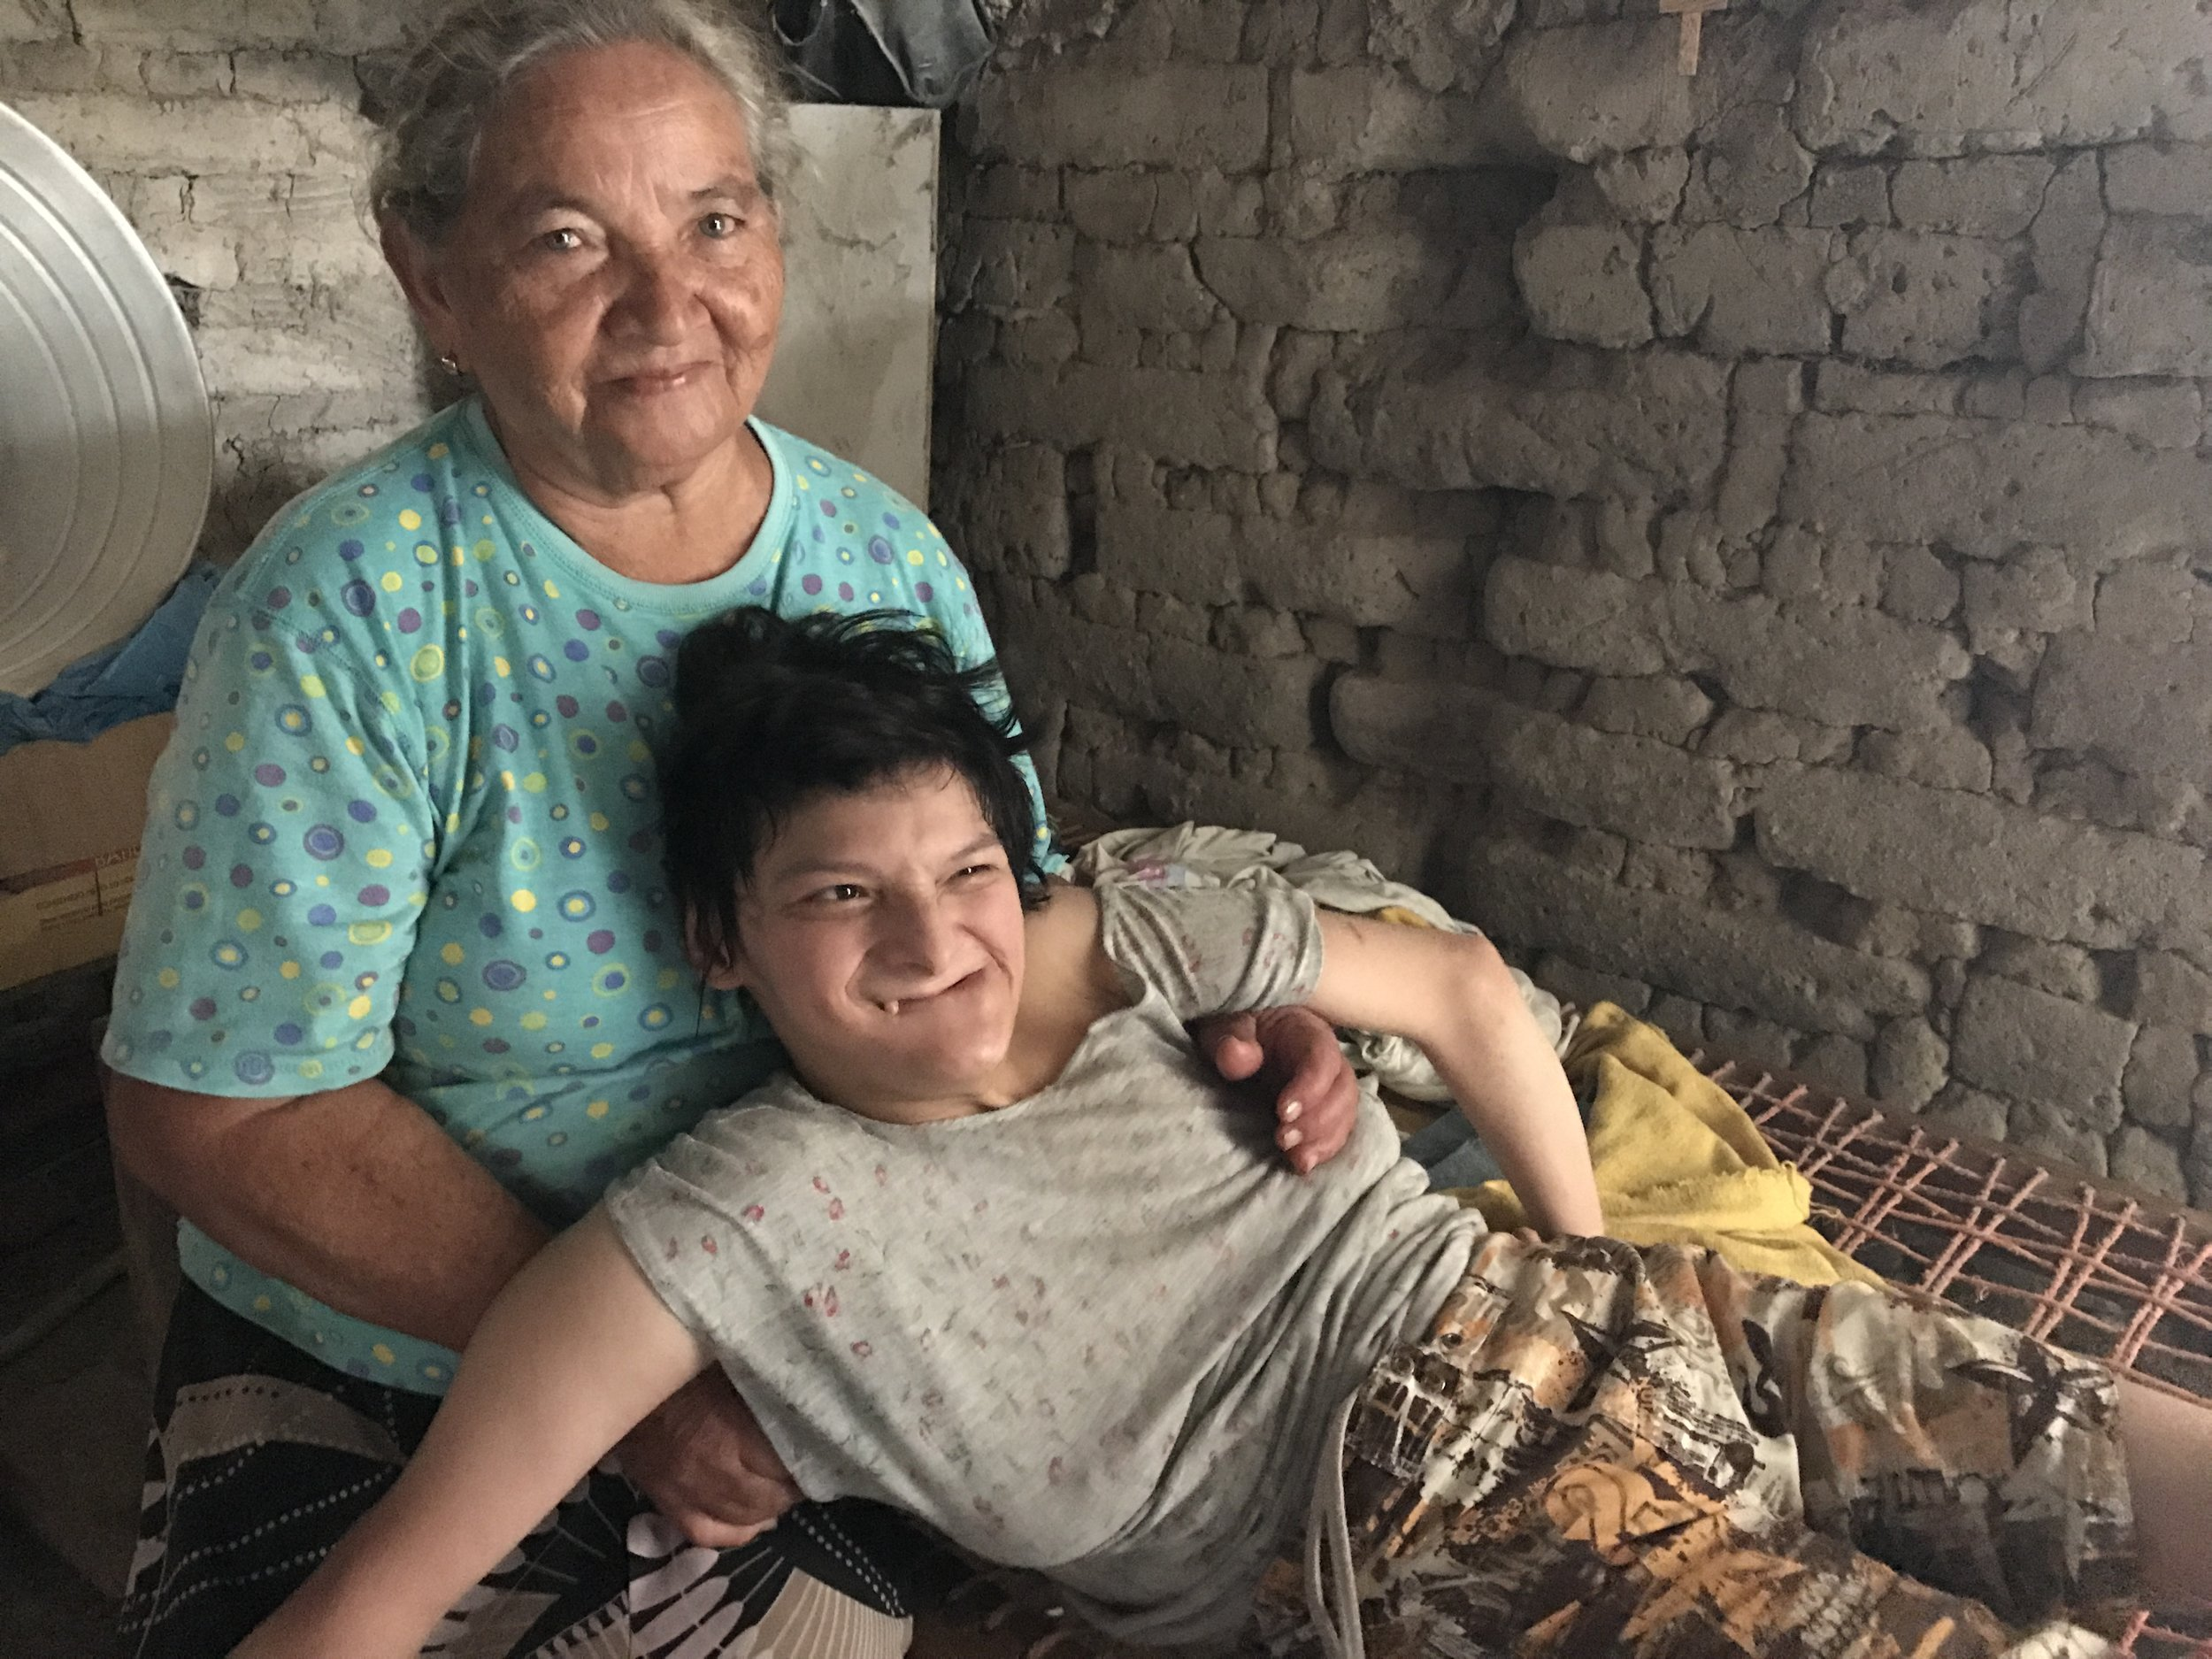 Antonia, a widow in her 70s, cares for her daughter, Angelita, who has cerebral palsy. The interns visited with them, bringing them food and songs.